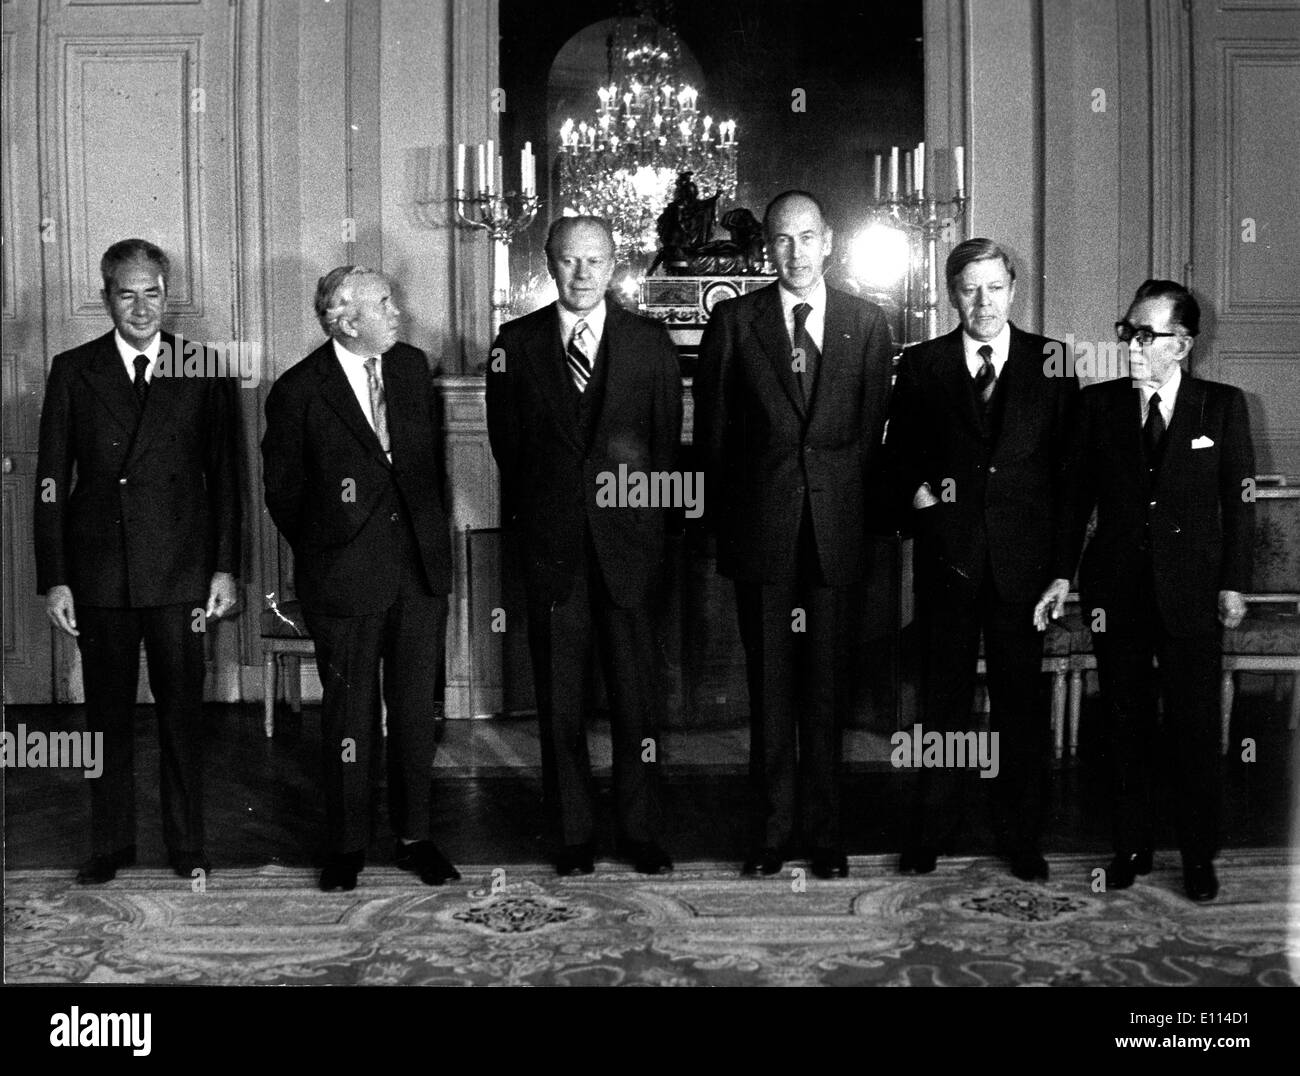 Nov 07, 1975; Rambouillet, France; The United States, Japan, Italy, Germany and England met to talk for three days about different points to face the international economic crisis at the Rambouillet Castle close to Paris. In the picture are the six representatives are posing at one of the rooms of the Castle. (From L-R) Mr. ALDO MORO; President of the Italian Conseil, Mr. HAROLD WILSON; British Prime Minister, American President GERALD FORD, President VALERY GISCARD D'ESTAING, German Chancellor HELMUT SCHMIDT and Japanese Prime Minister TAKEO MIKI - Stock Image